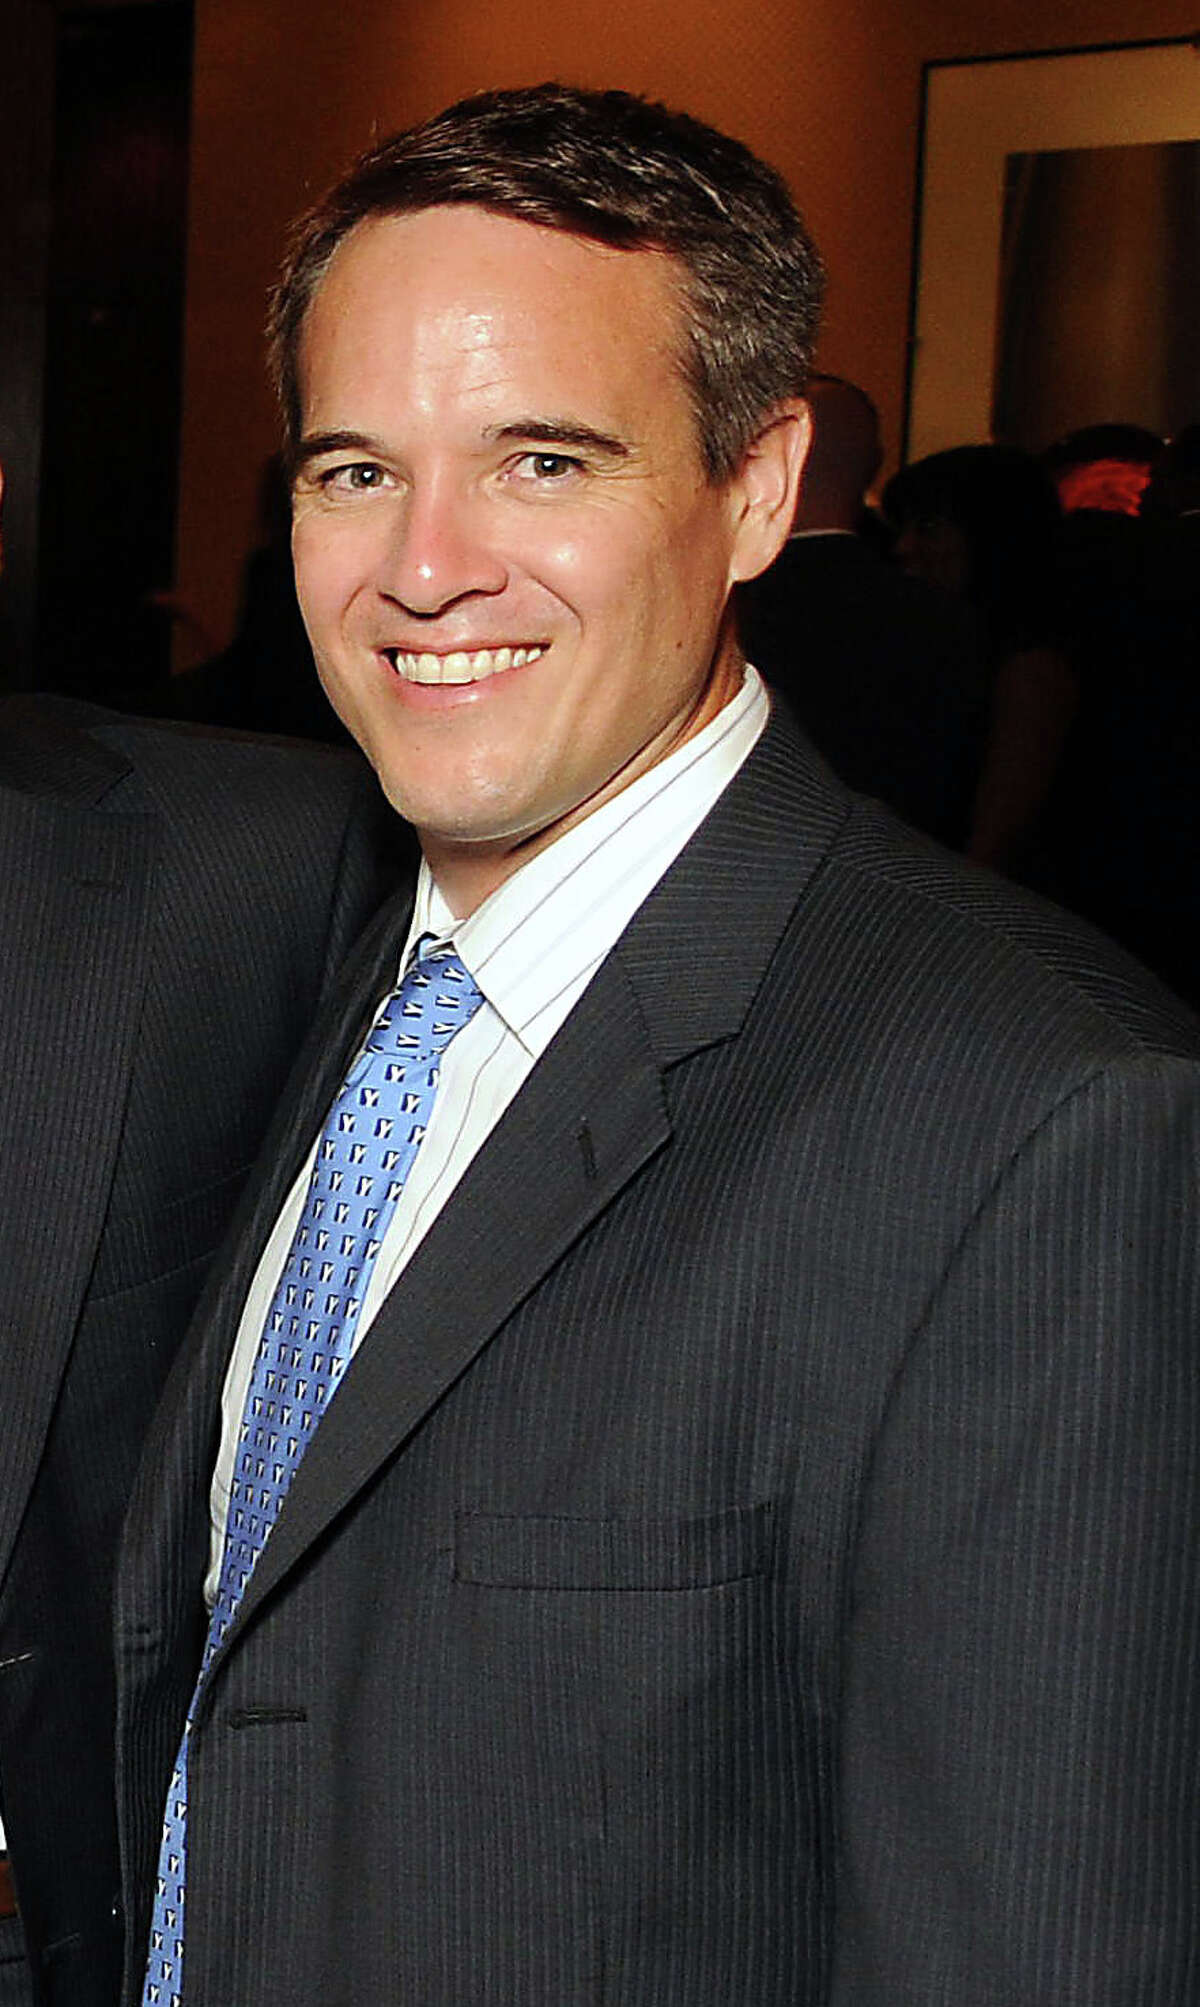 Jason Bernal was promoted to president and chief executive of YES in May 2011.